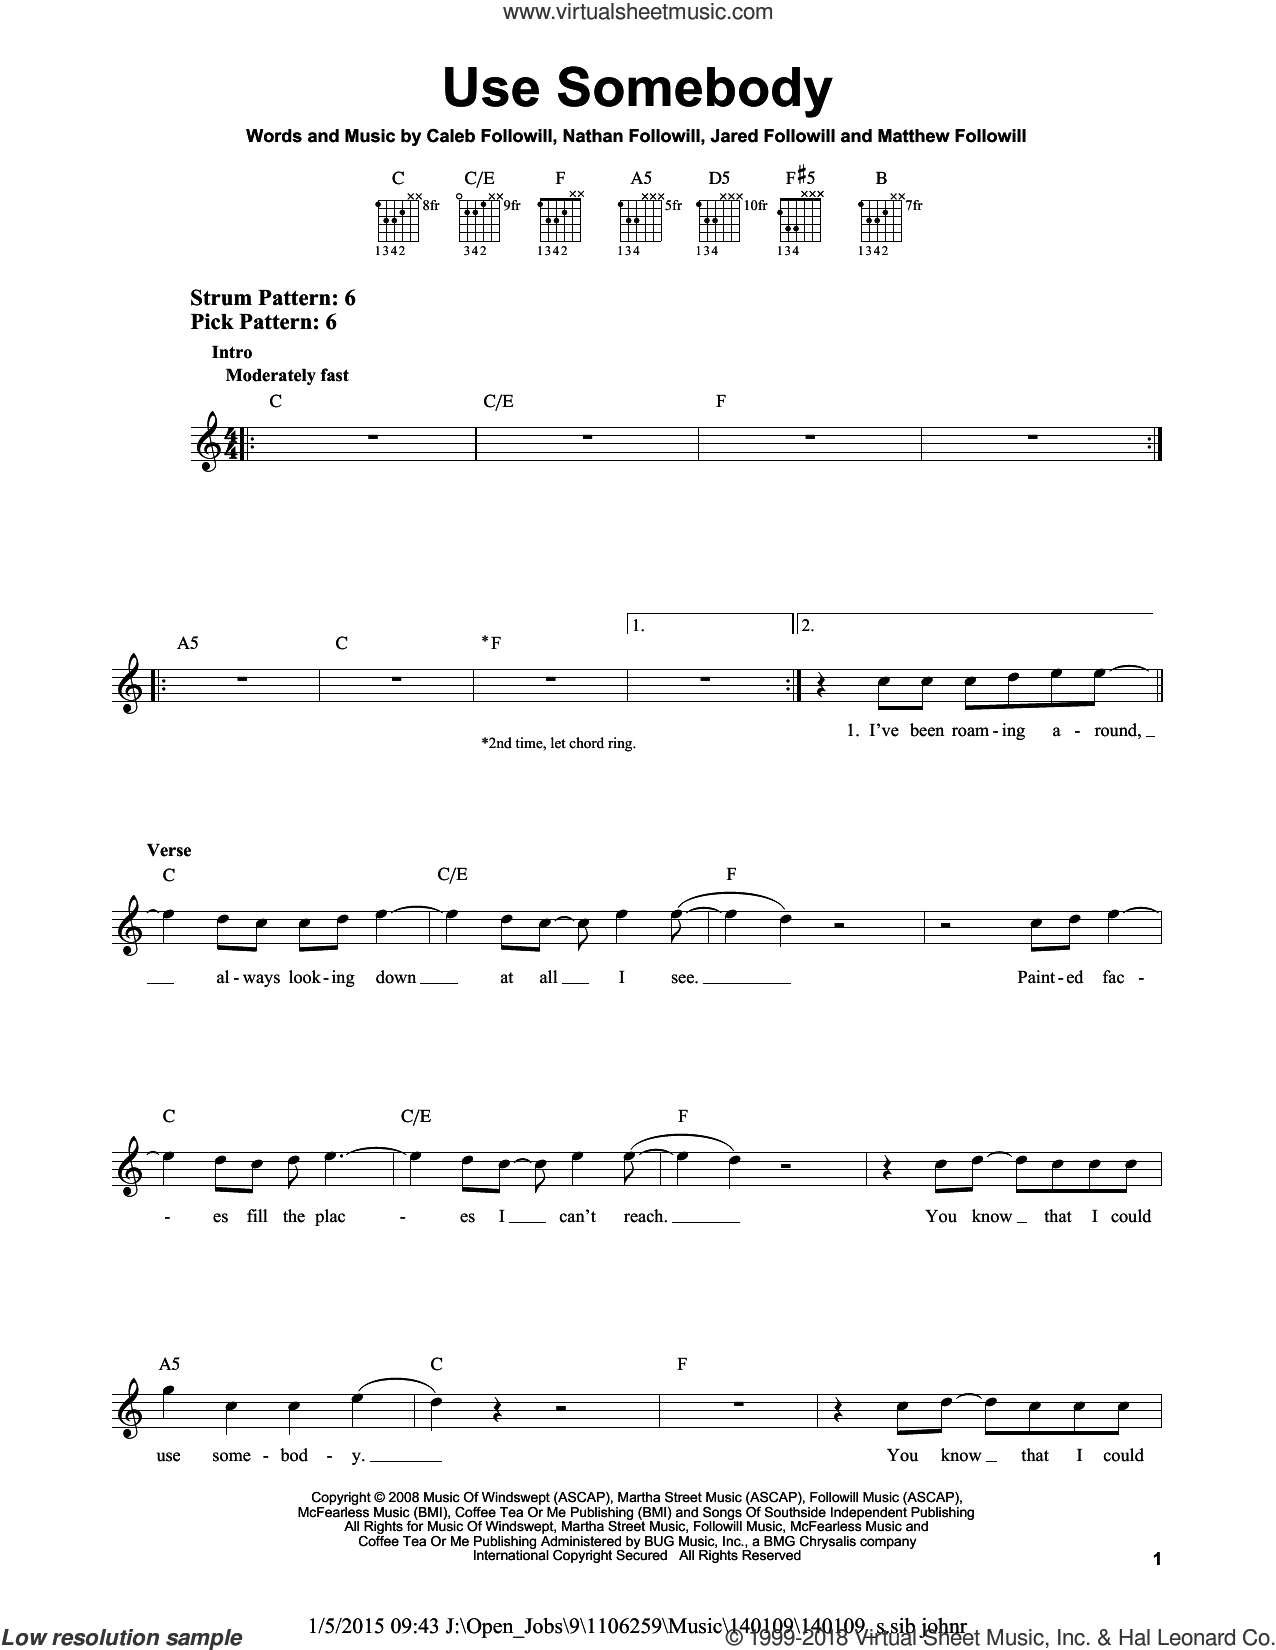 Leon use somebody sheet music for guitar solo chords use somebody sheet music for guitar solo chords by kings of leon easy hexwebz Image collections